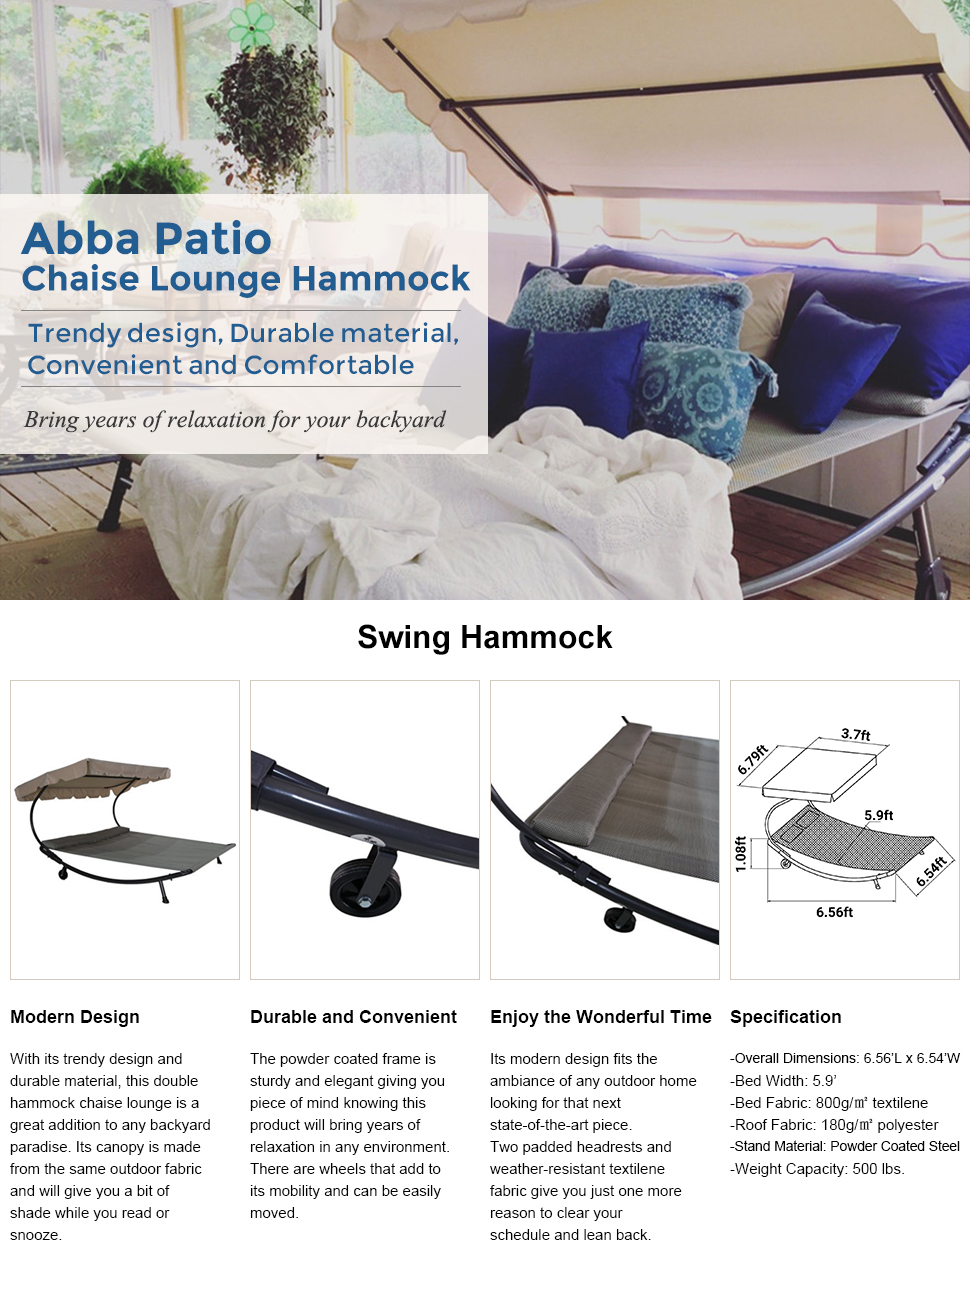 amazon com  abba patio outdoor portable double chaise lounge hammock bed with sun shade and